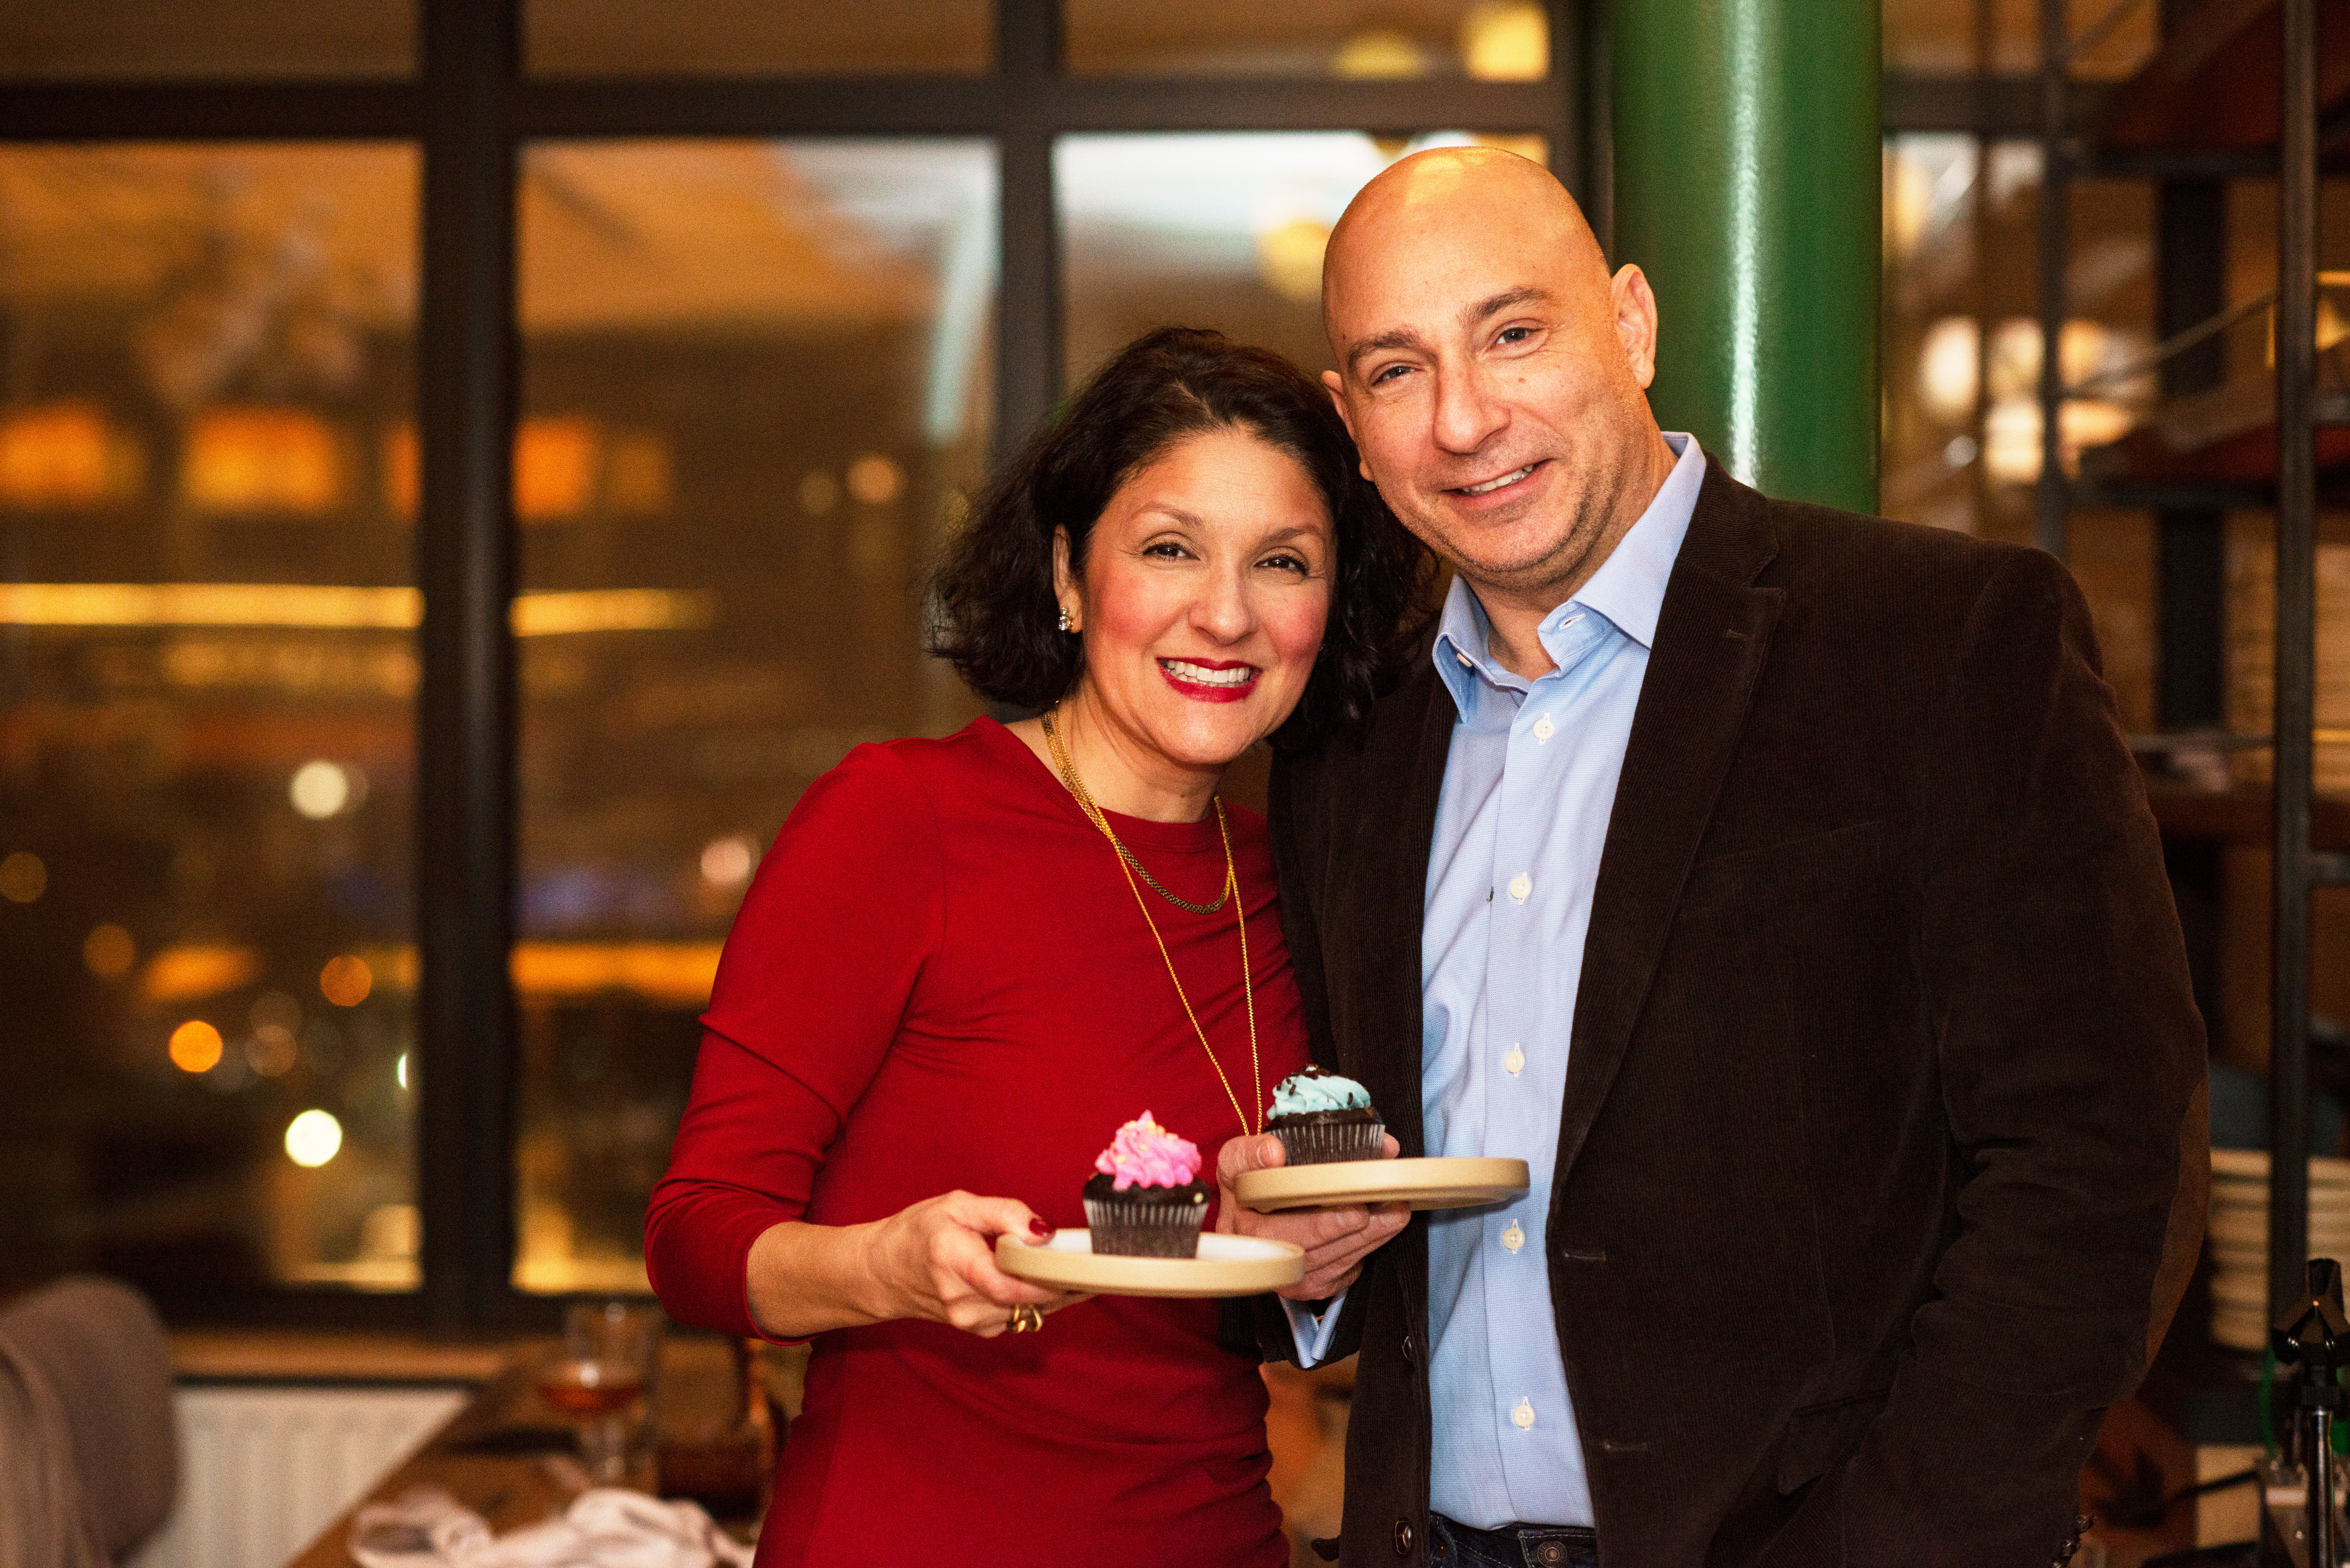 man and woman in red dress posing with cupcakes on plates